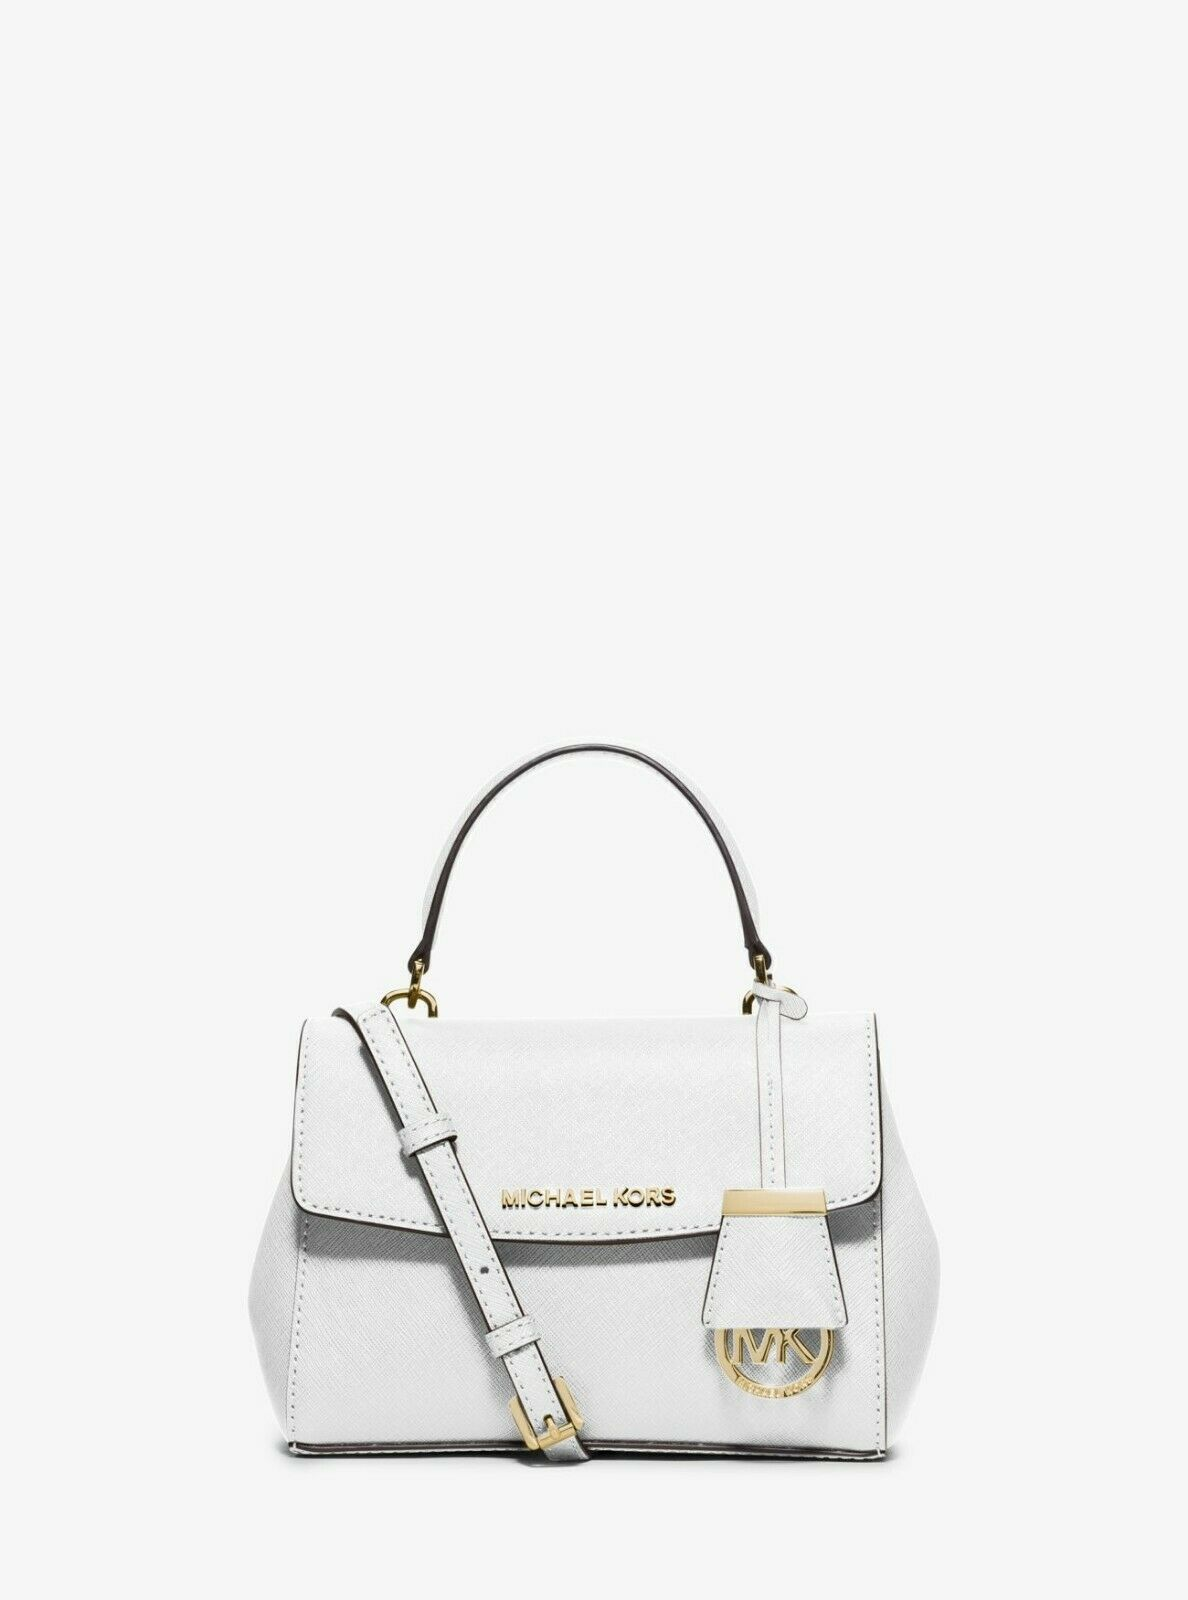 Michael Kors Ava Extra Small White Leather Crossbody Satchel Bag